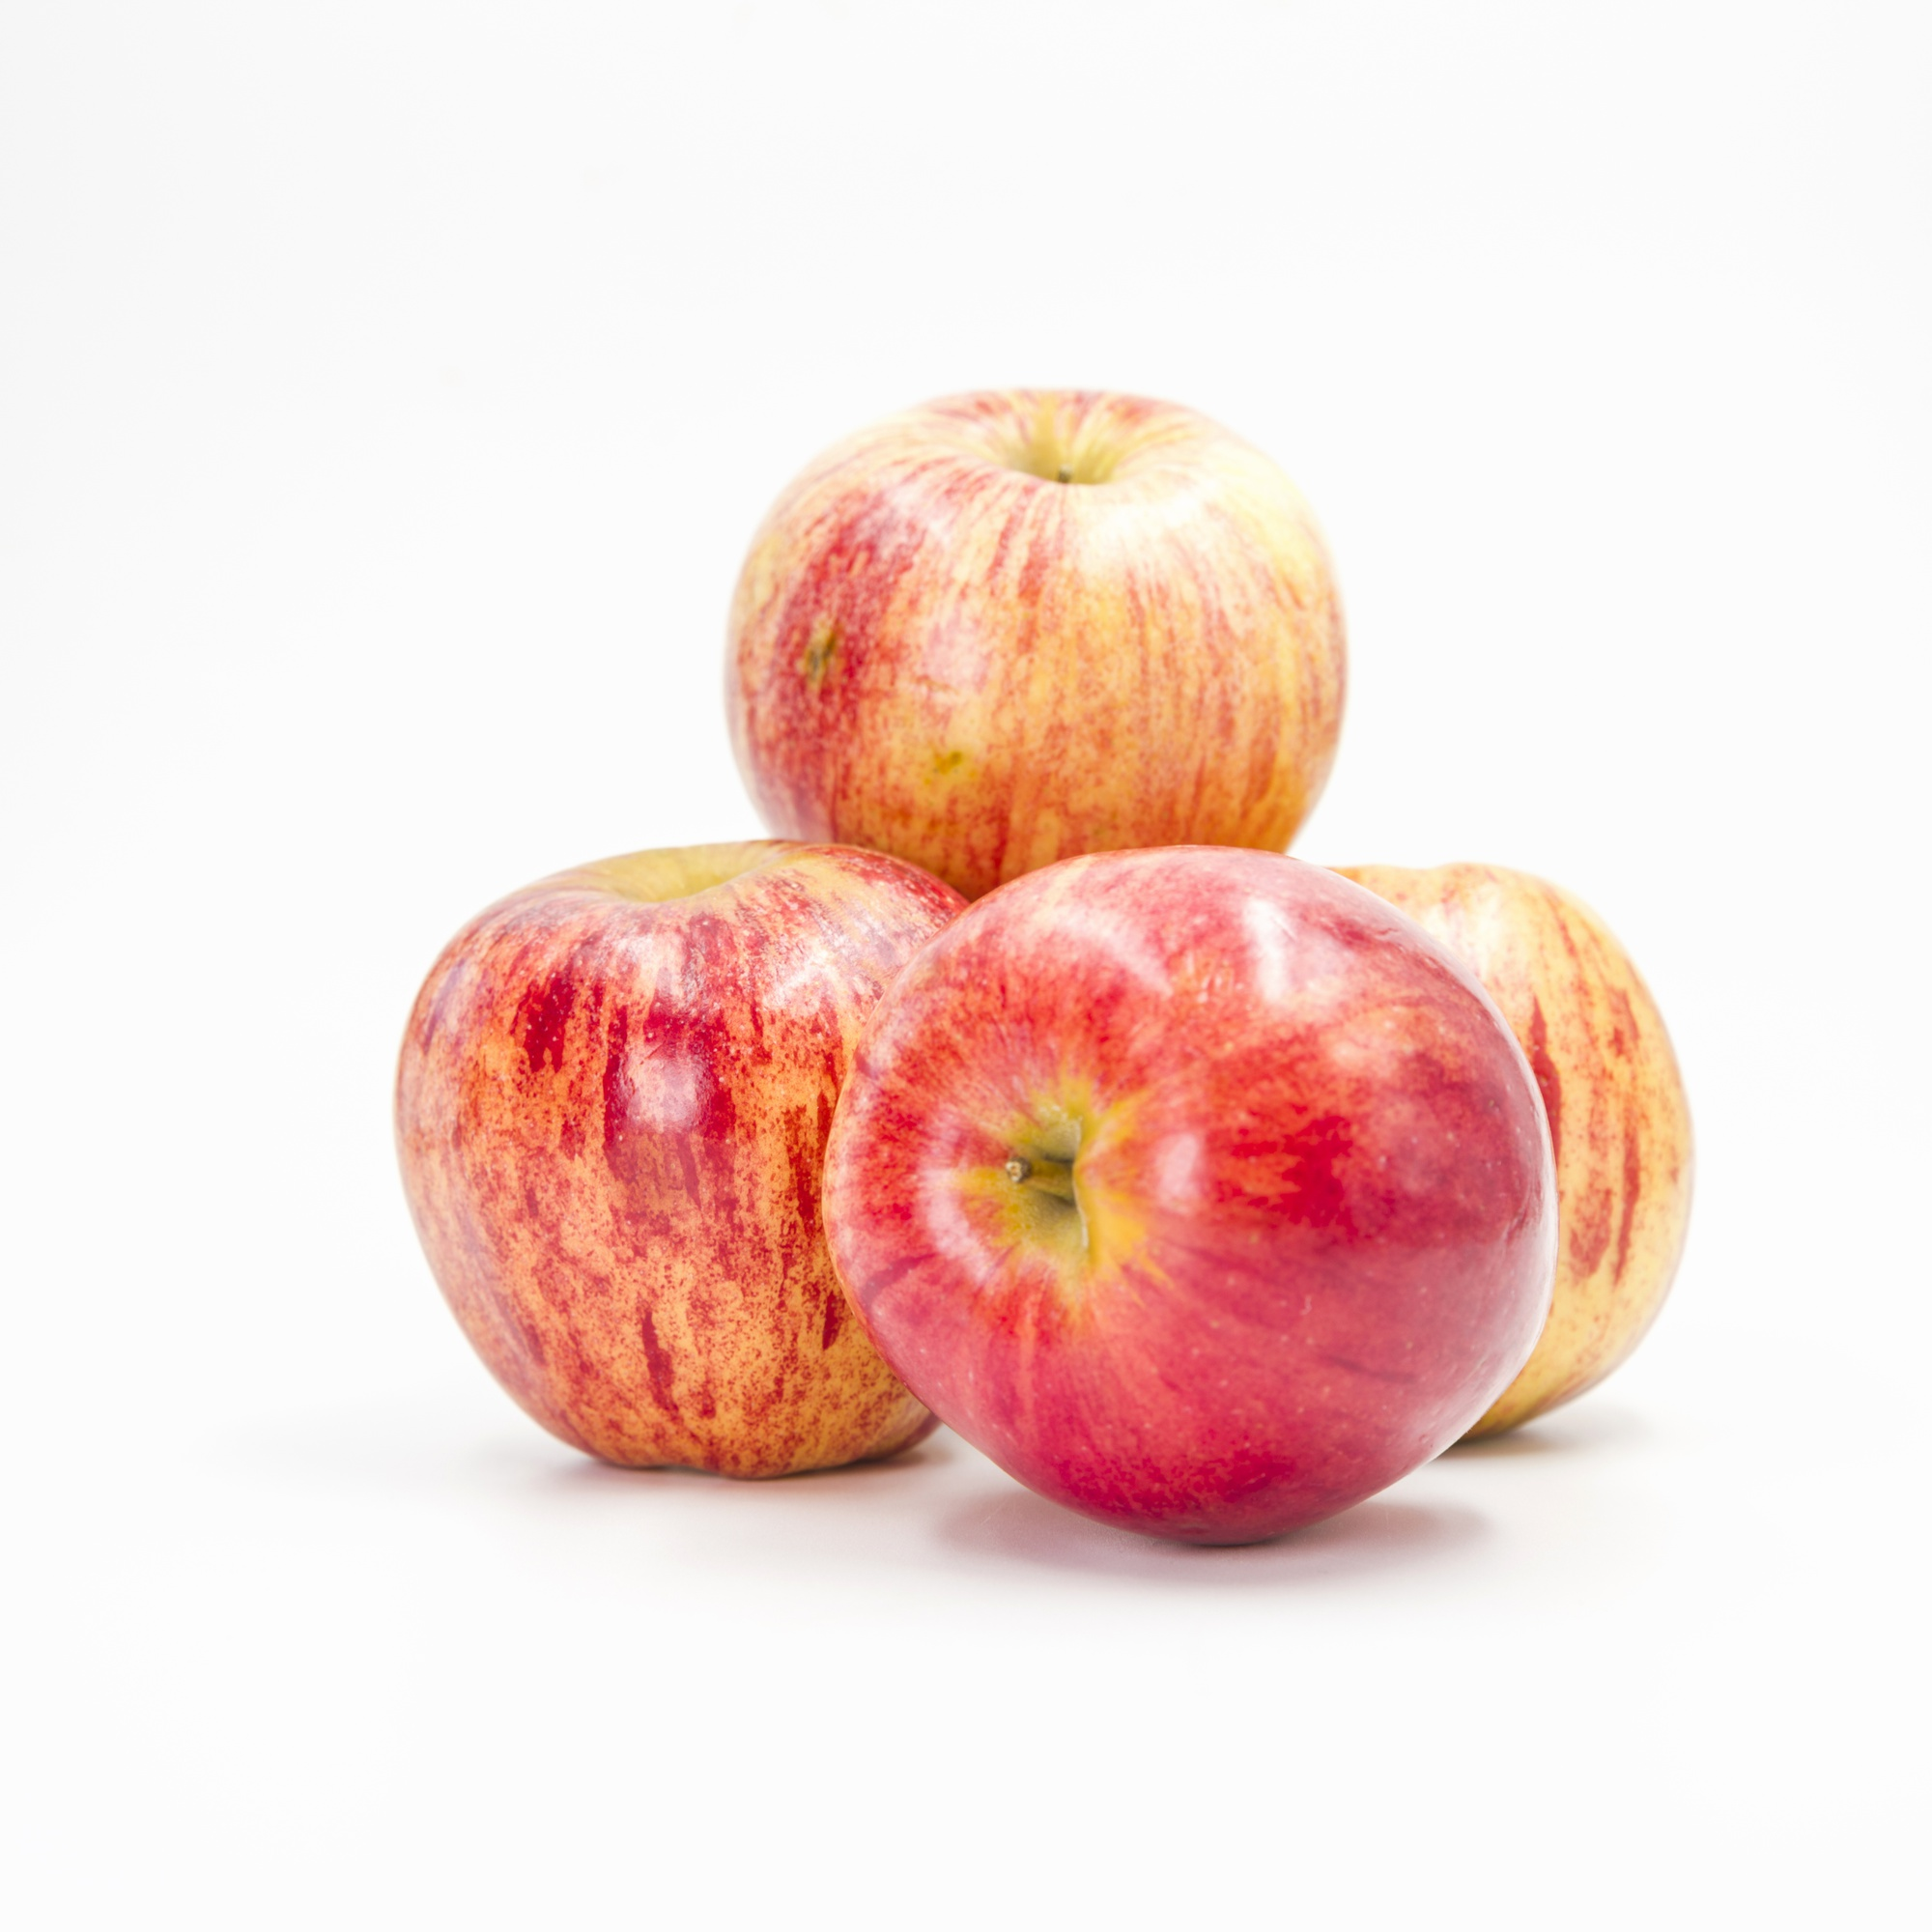 Arrangement with red apples